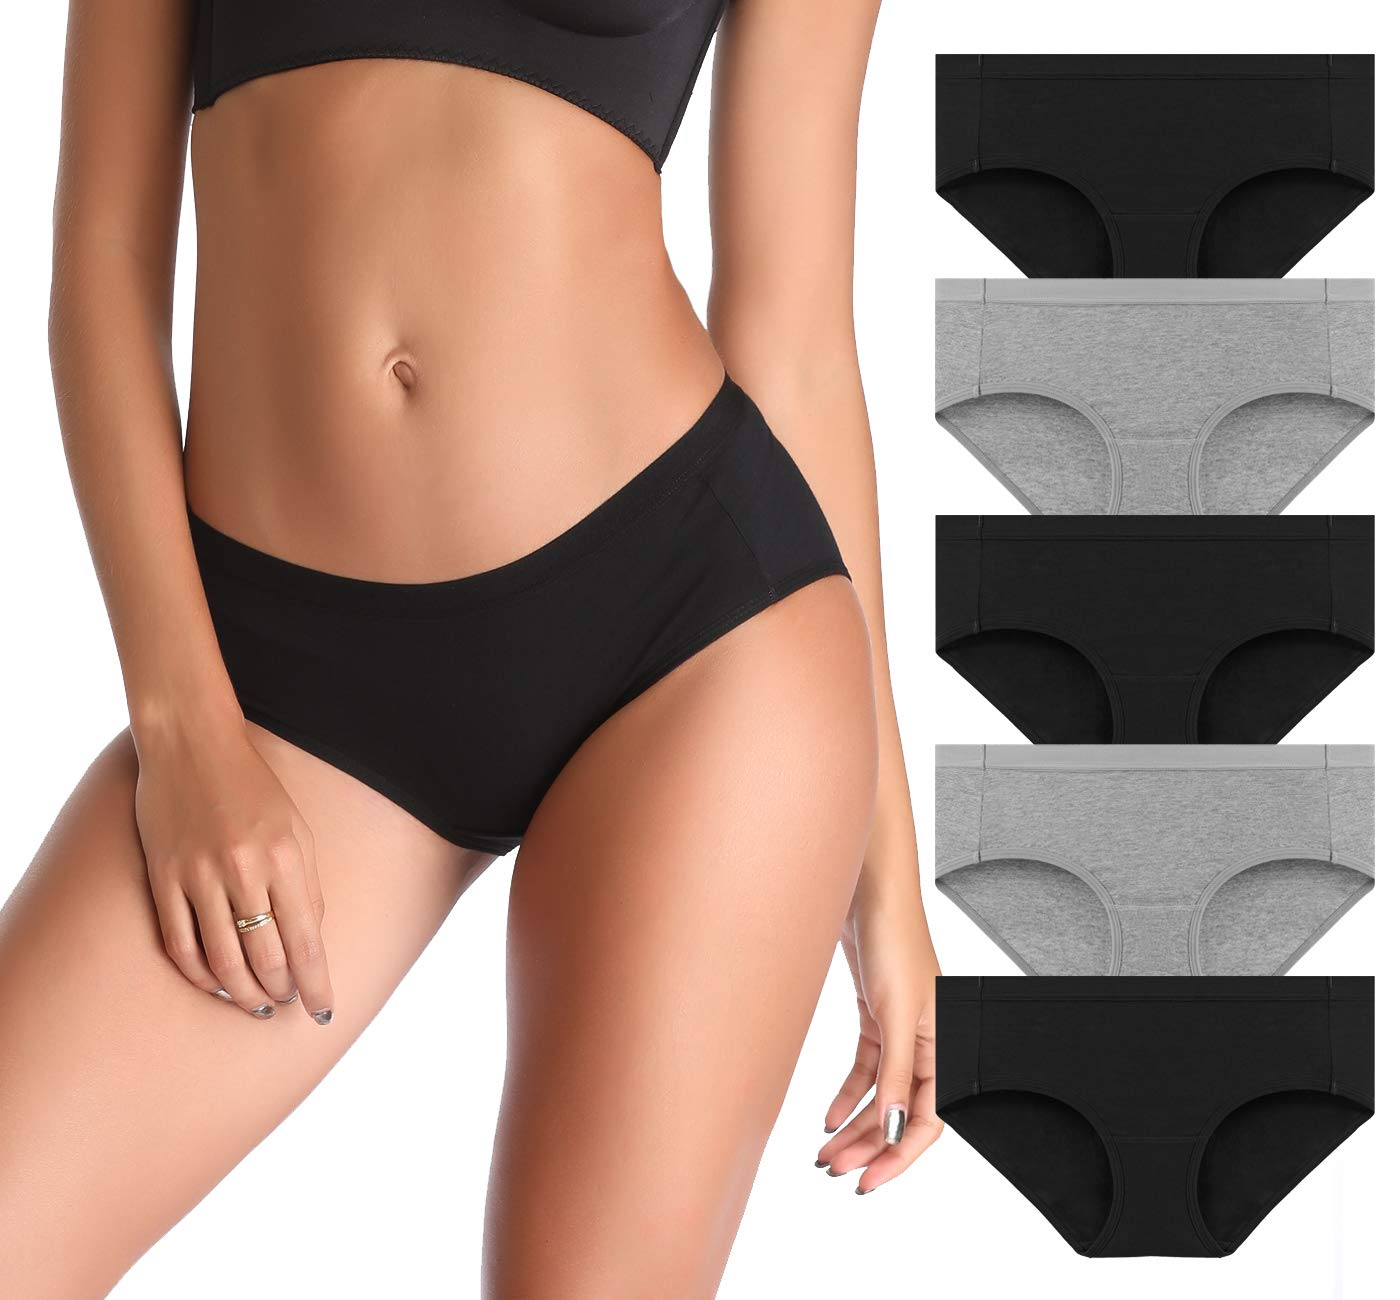 CULAYII Womens Underwear Hipster Panties,3/5 Pack Cotton Comfortable Bikinis Panty Briefs Soft Stretch Underpants Solid Color